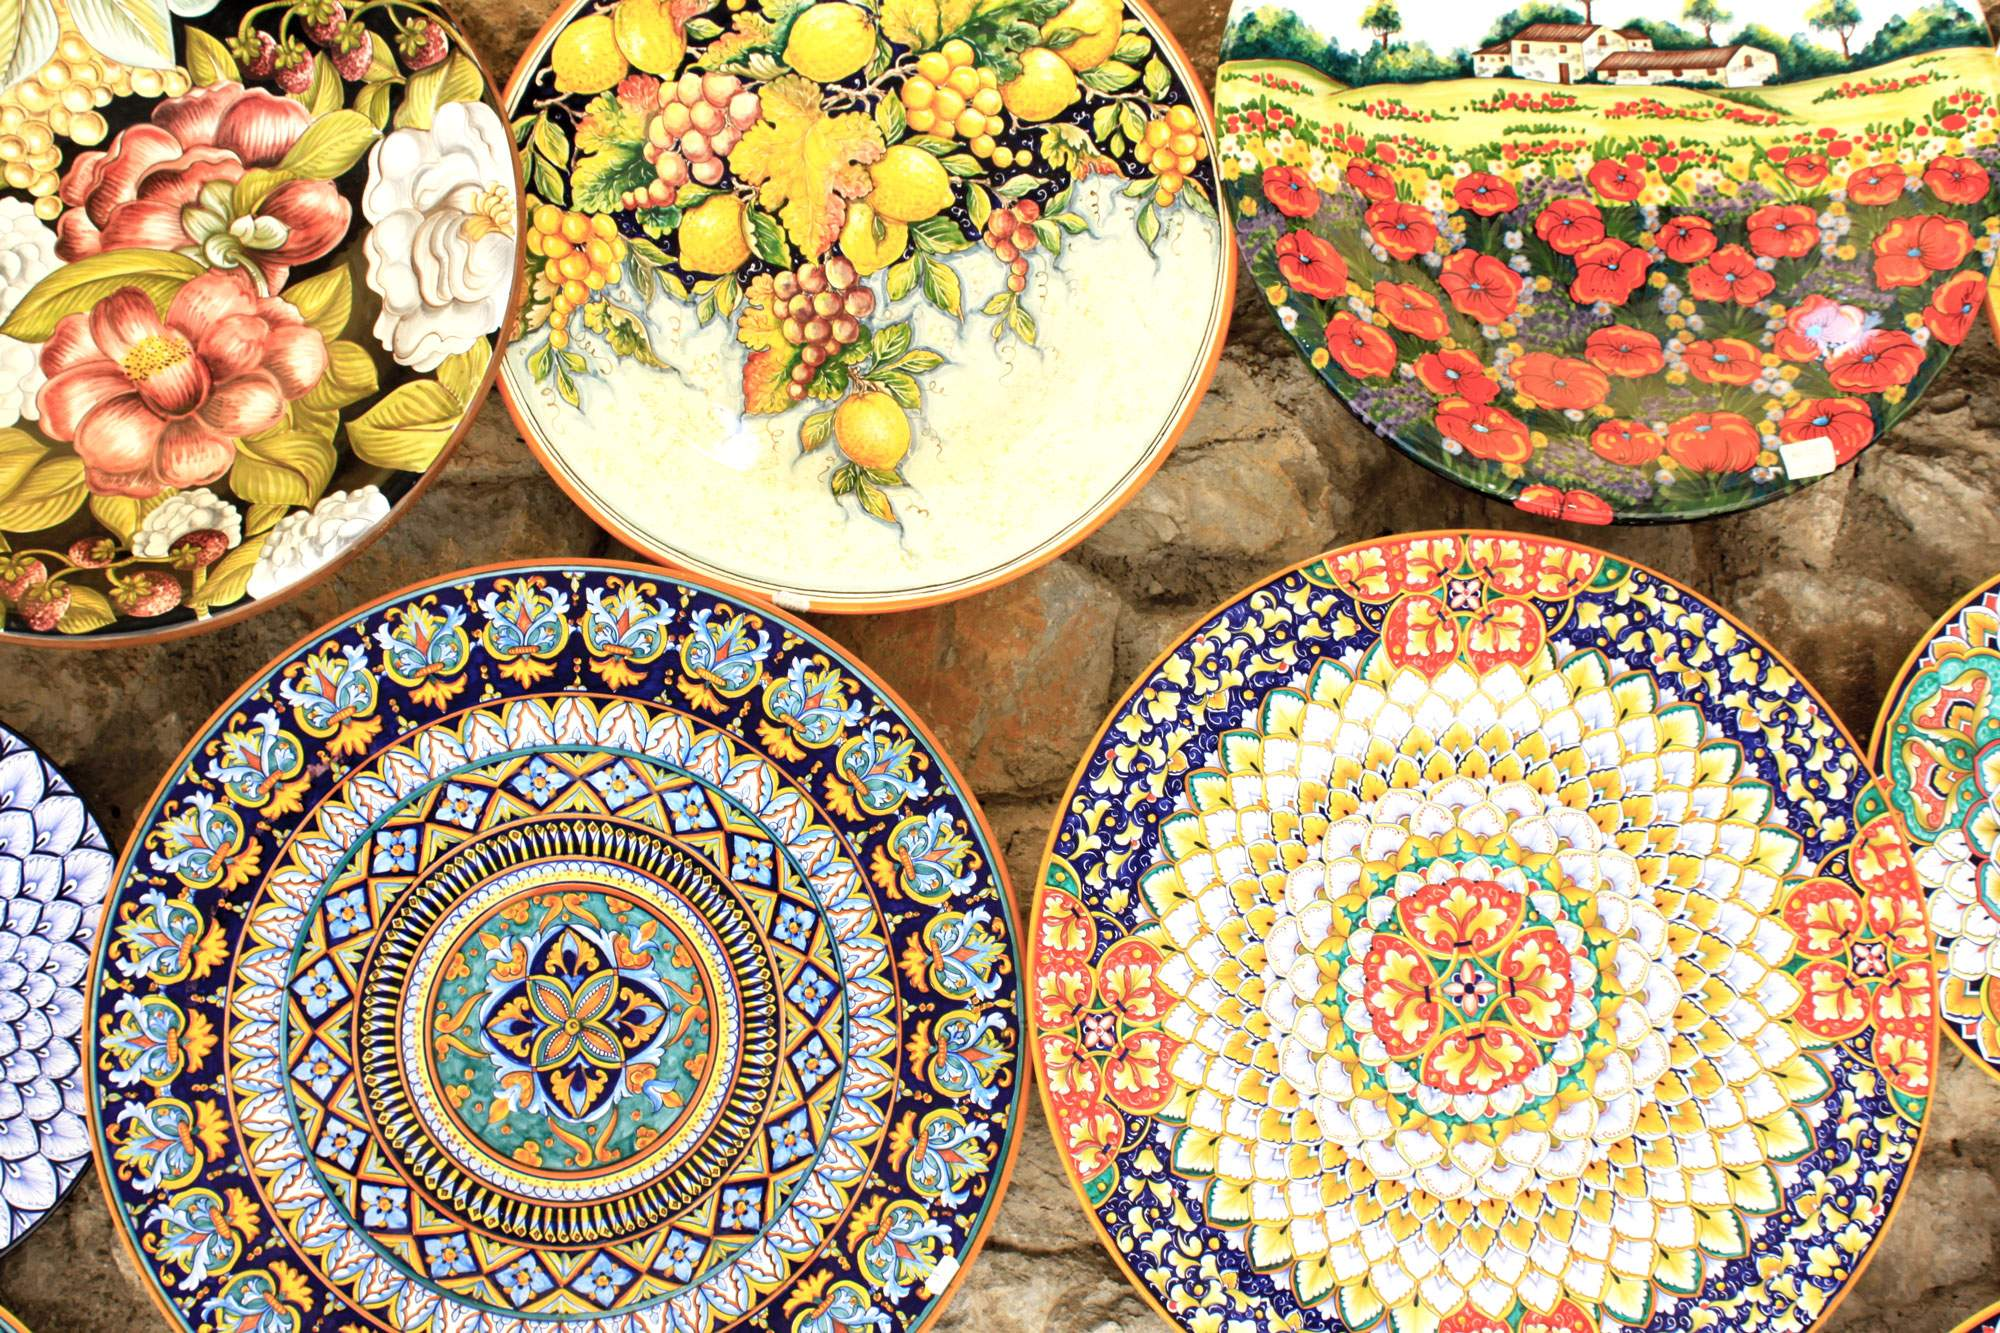 ravello-ceramics-italy-amalfi-coast-art